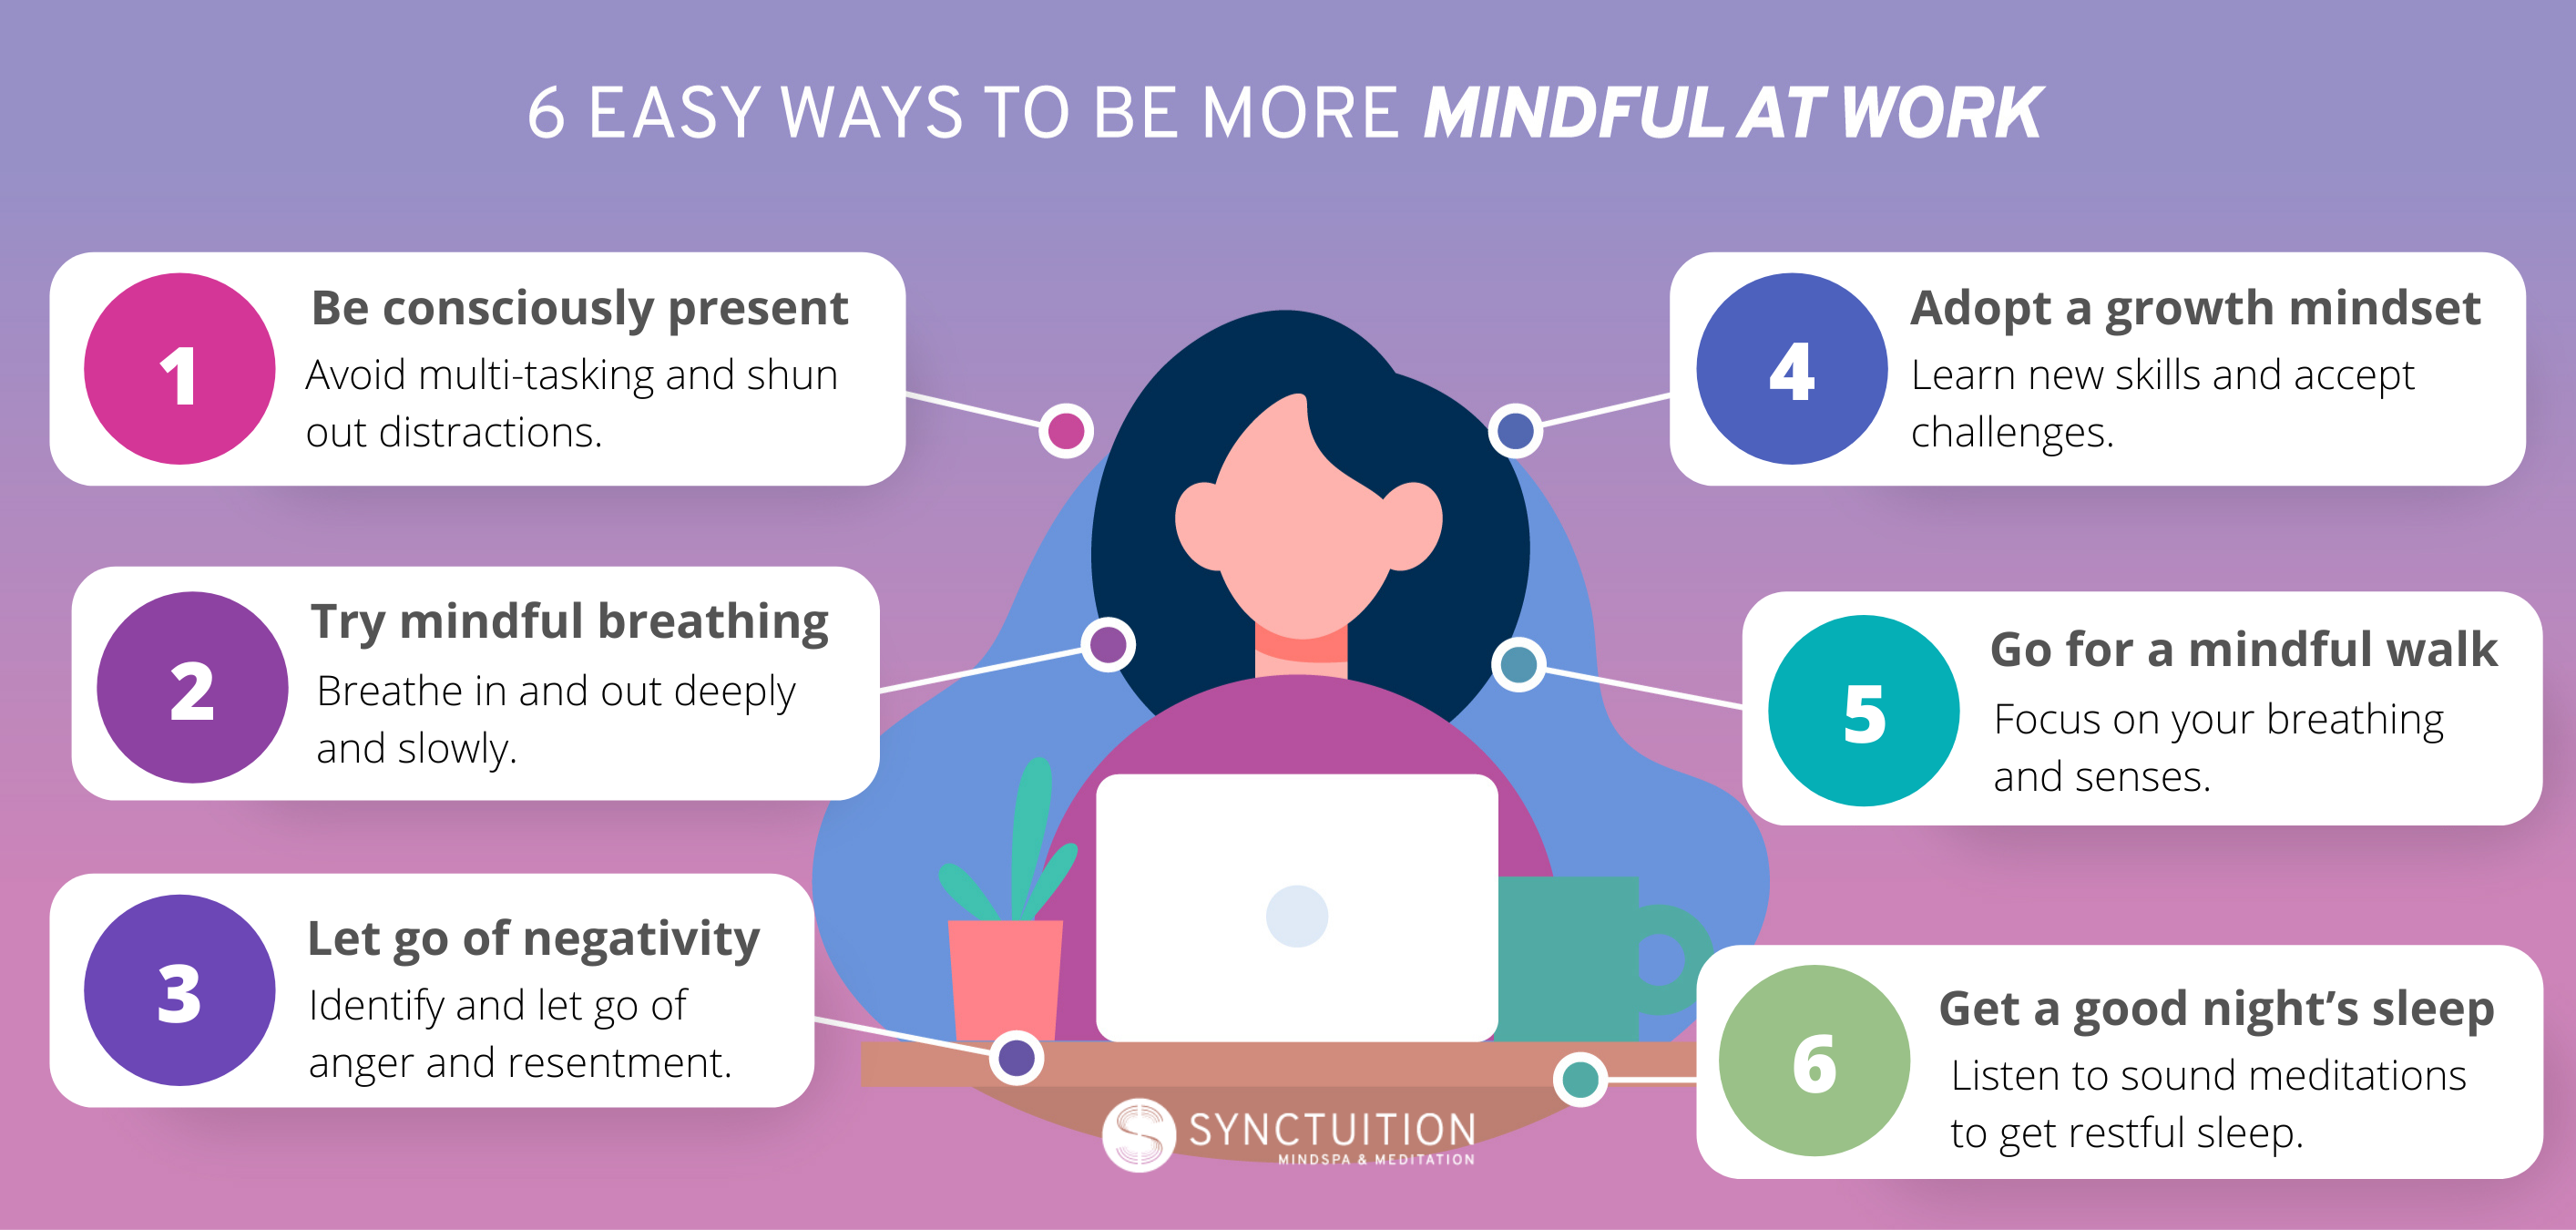 6 ways to be mindful at work